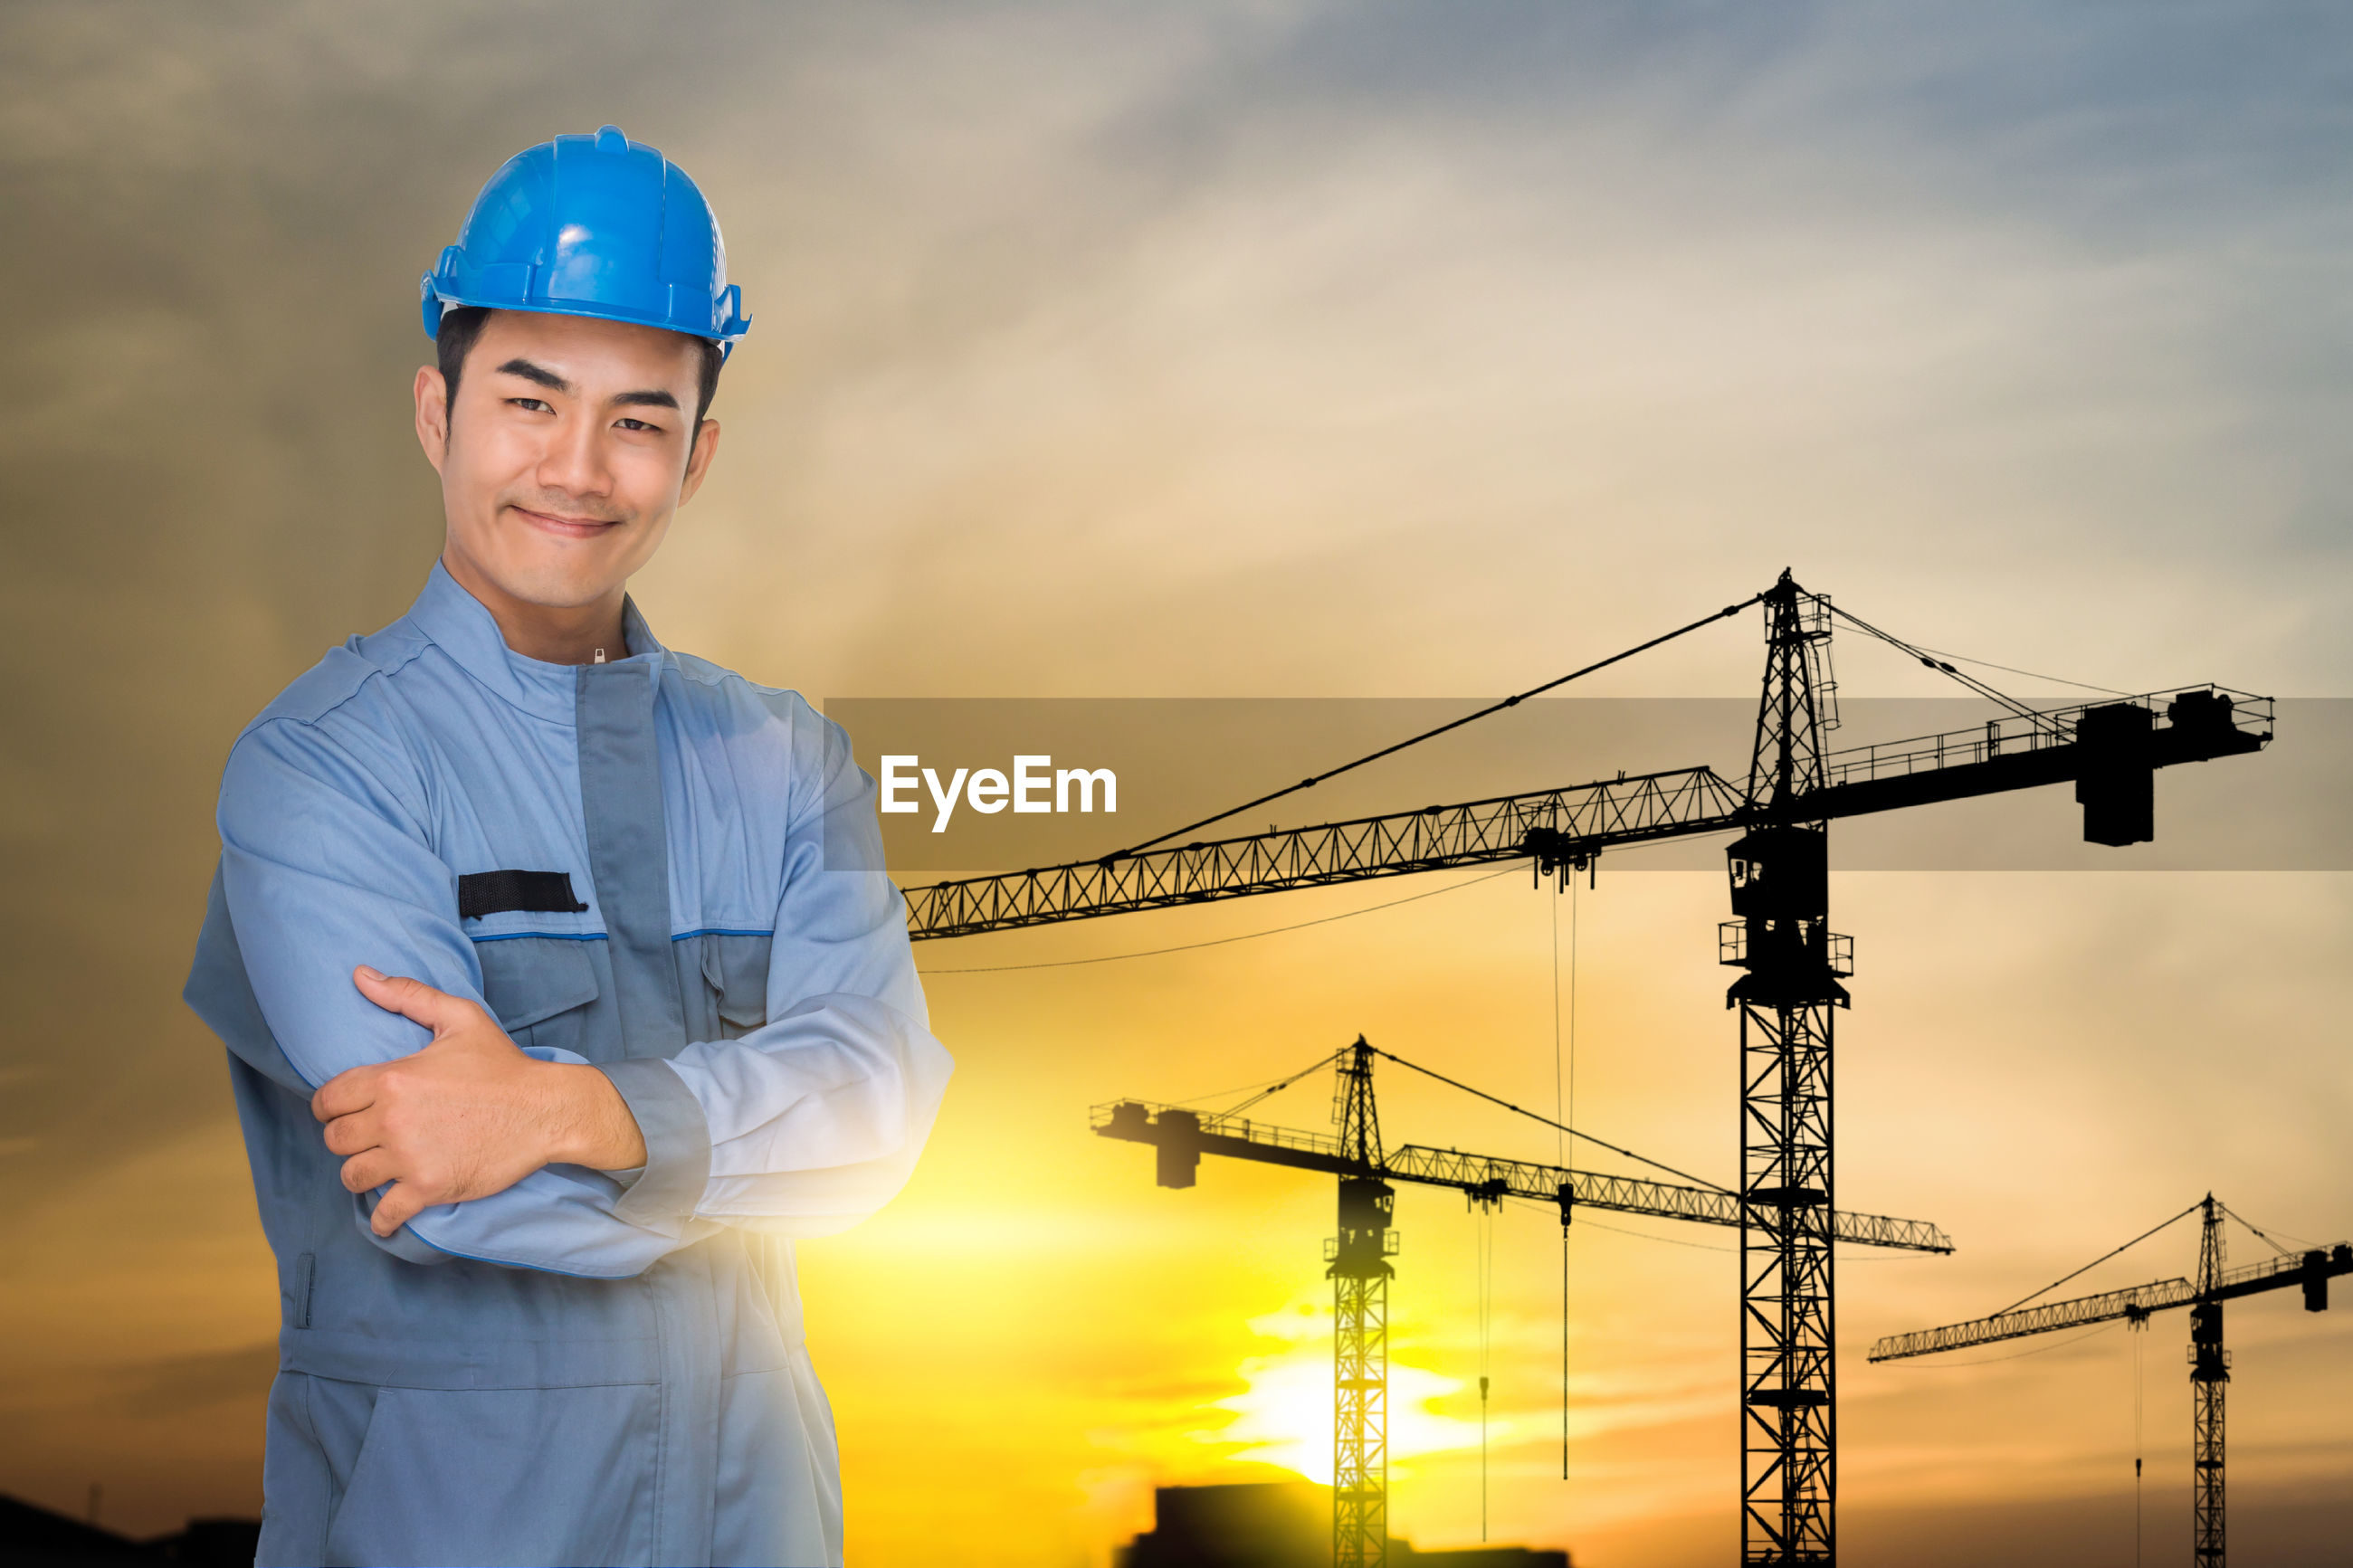 Portrait of man wearing hardhat while standing at construction site